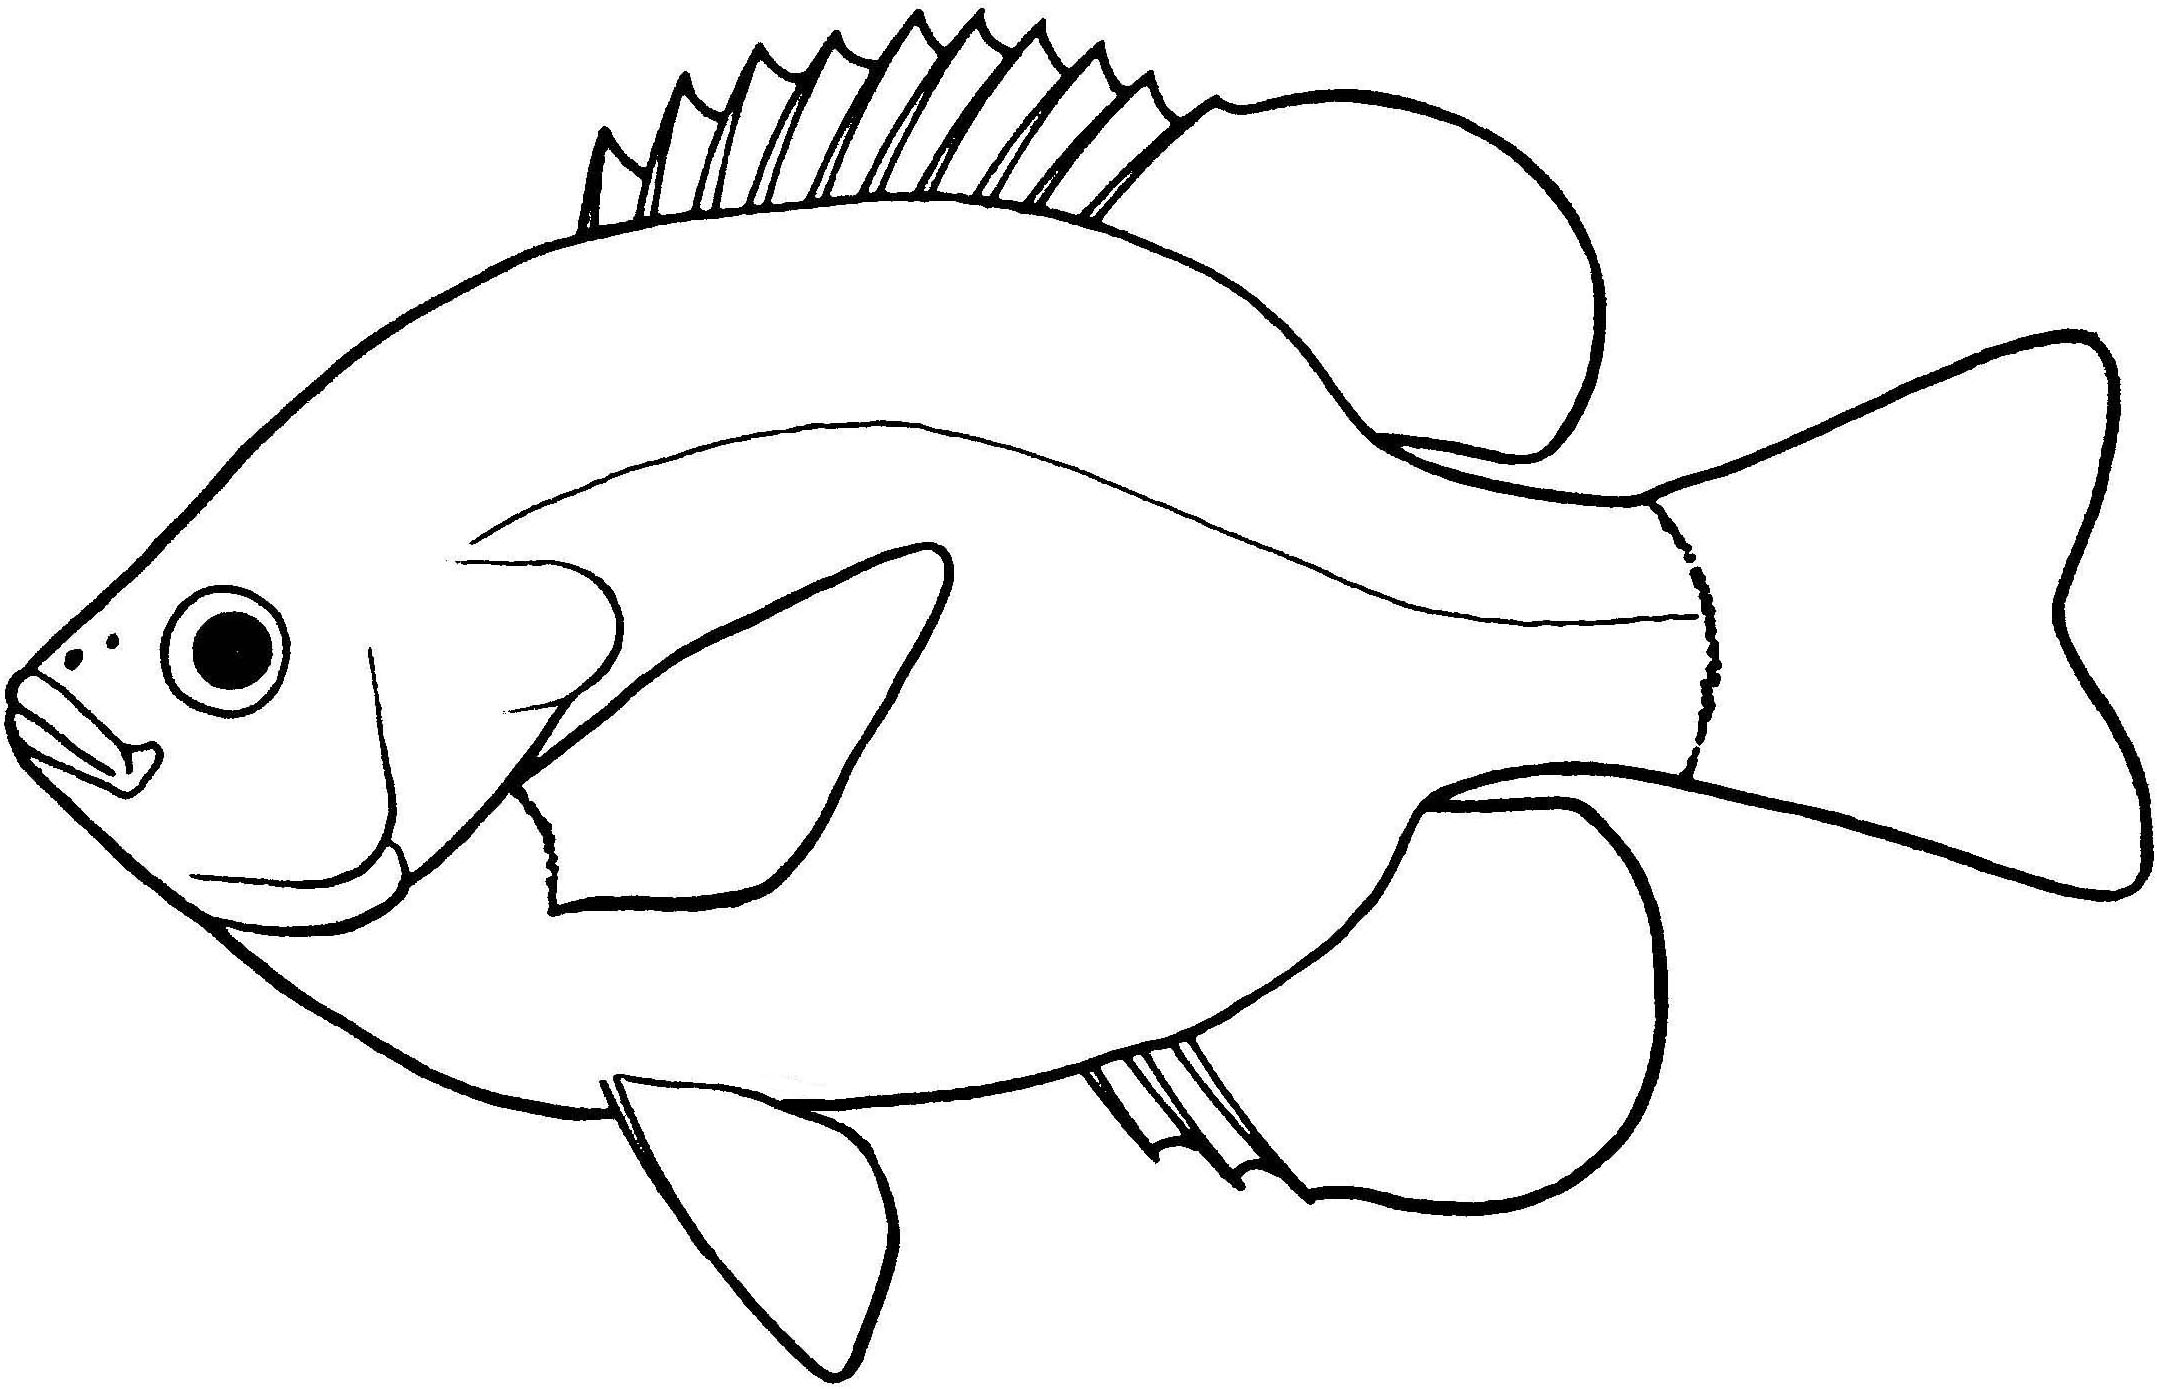 2157x1389 Drawing clipart fish line